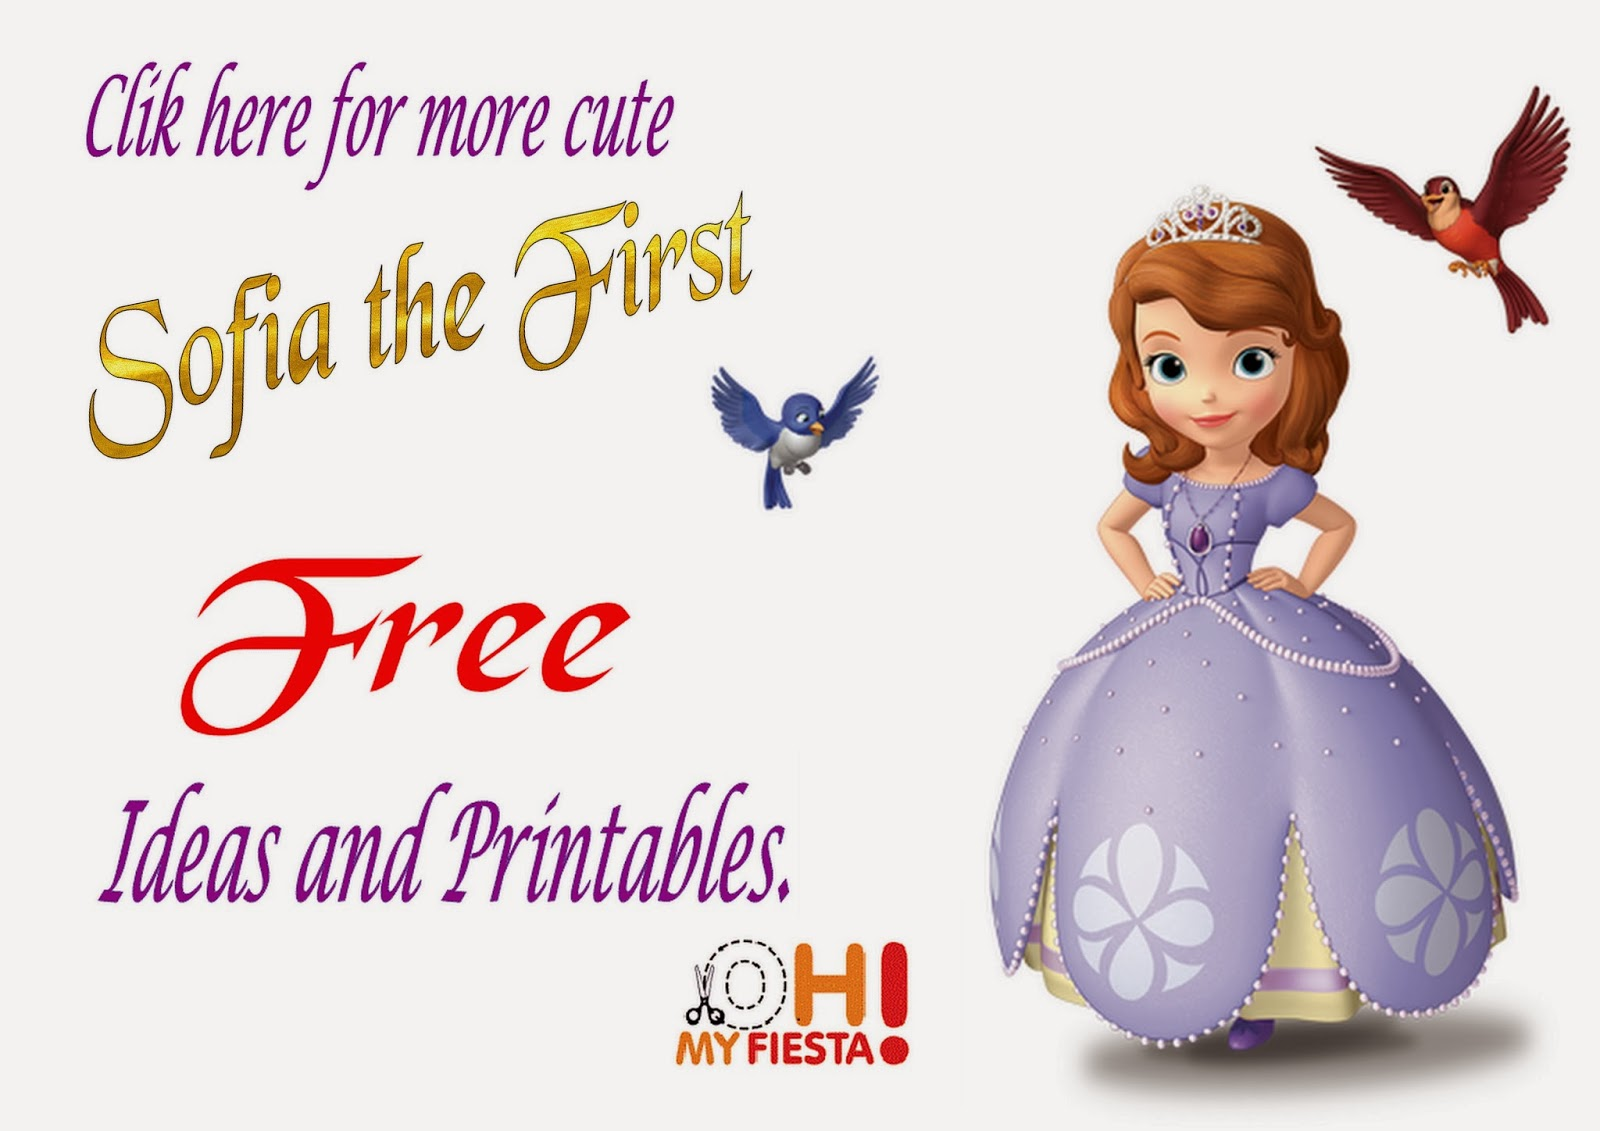 8 Best Images of Free Printable Princess Sofia Invitations  : princess sofia the first printables free128761 from www.printablee.com size 1600 x 1131 jpeg 185kB